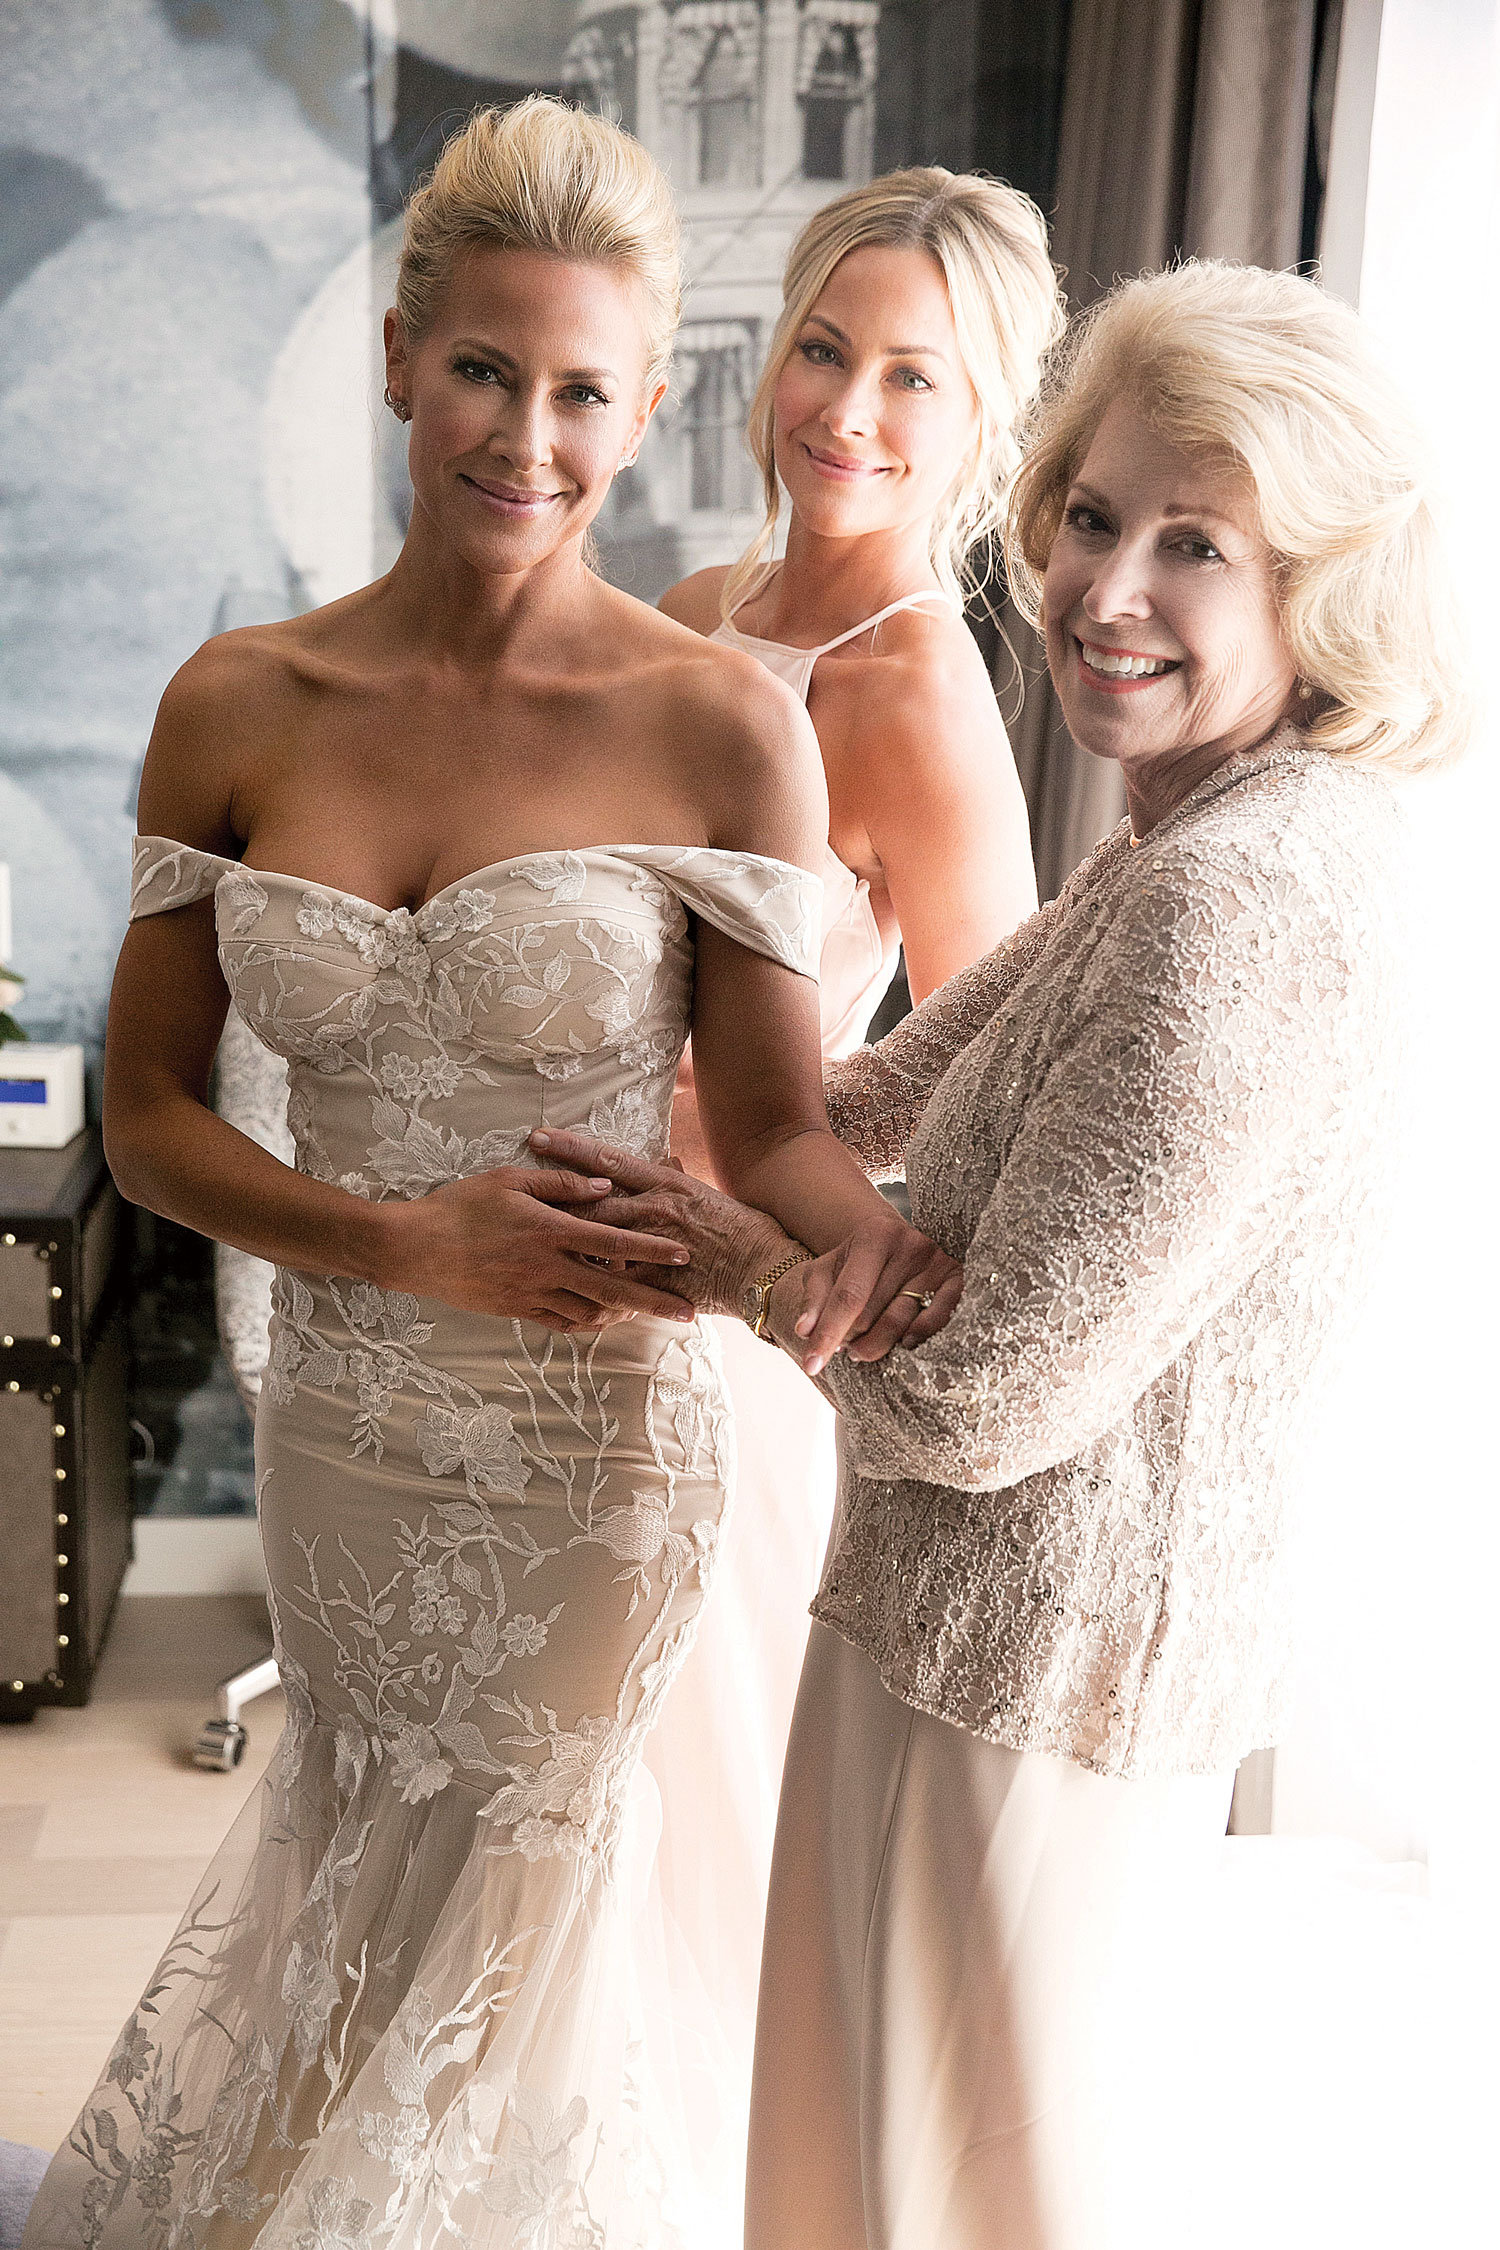 Inside Weddings winter 2018 issue preview real weddings wedding ideas brittany daniel bridal suite